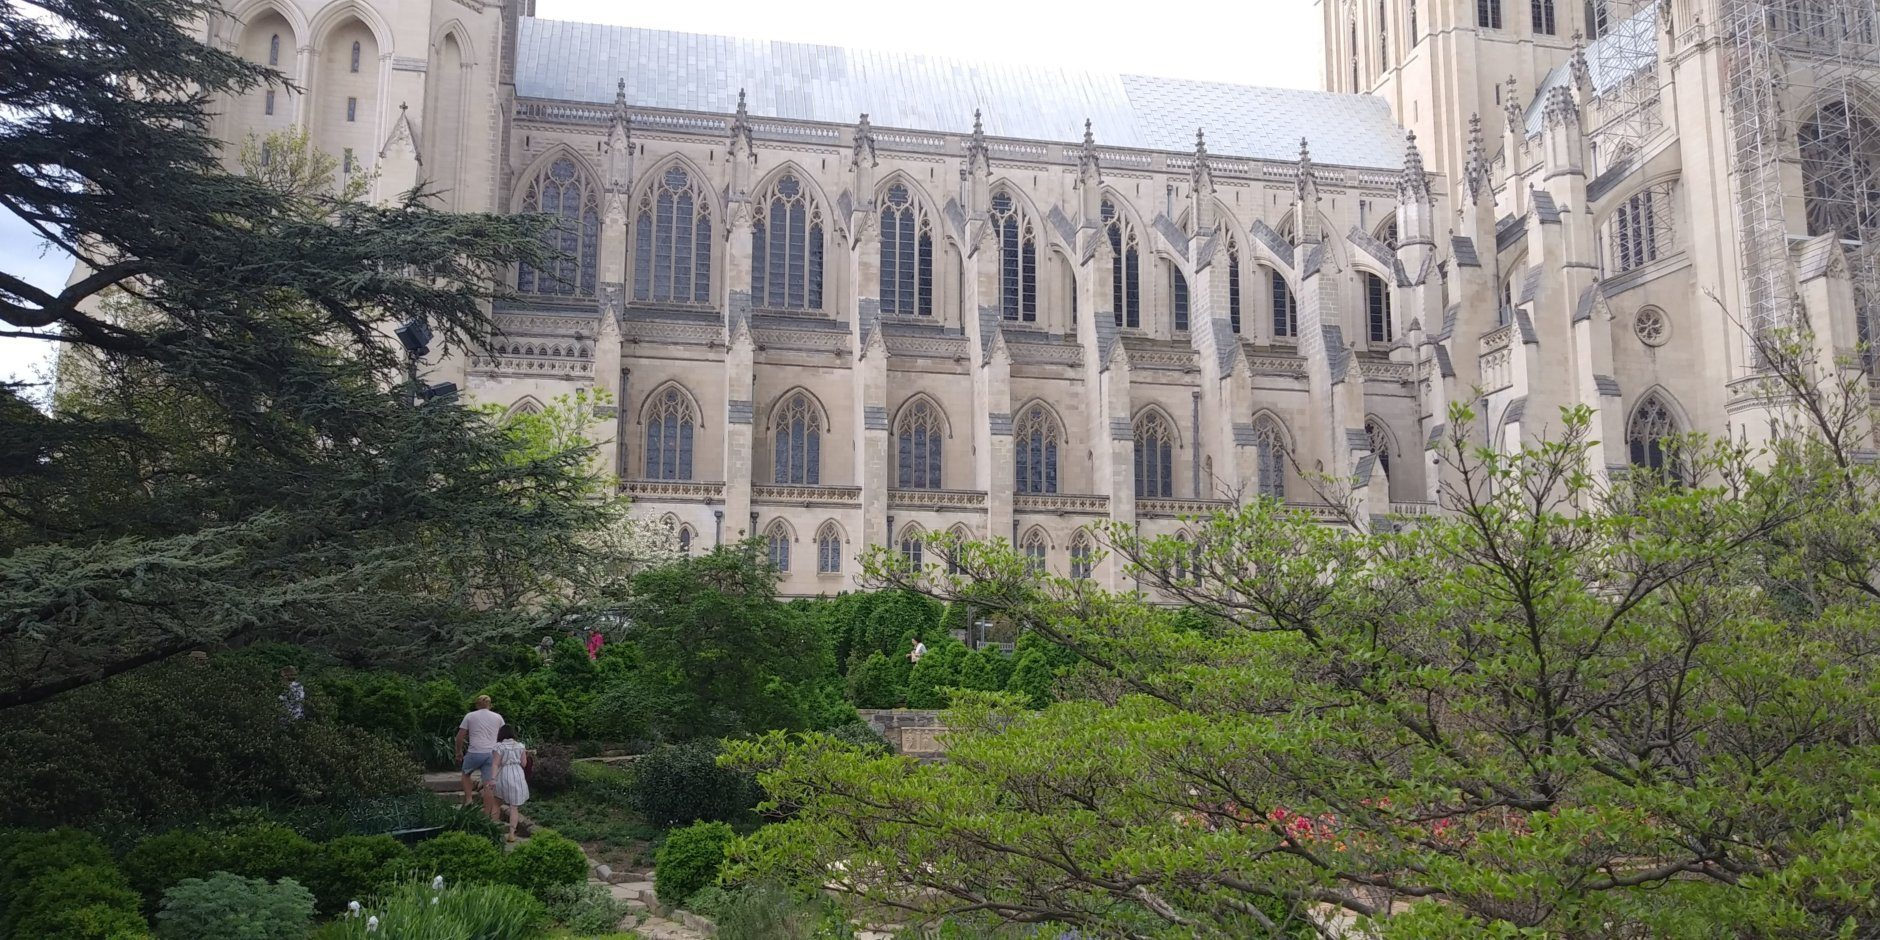 The Bishop's Garden at the Washington National Cathedral blooms in spring time. (WTOP/Abigail Constantino)